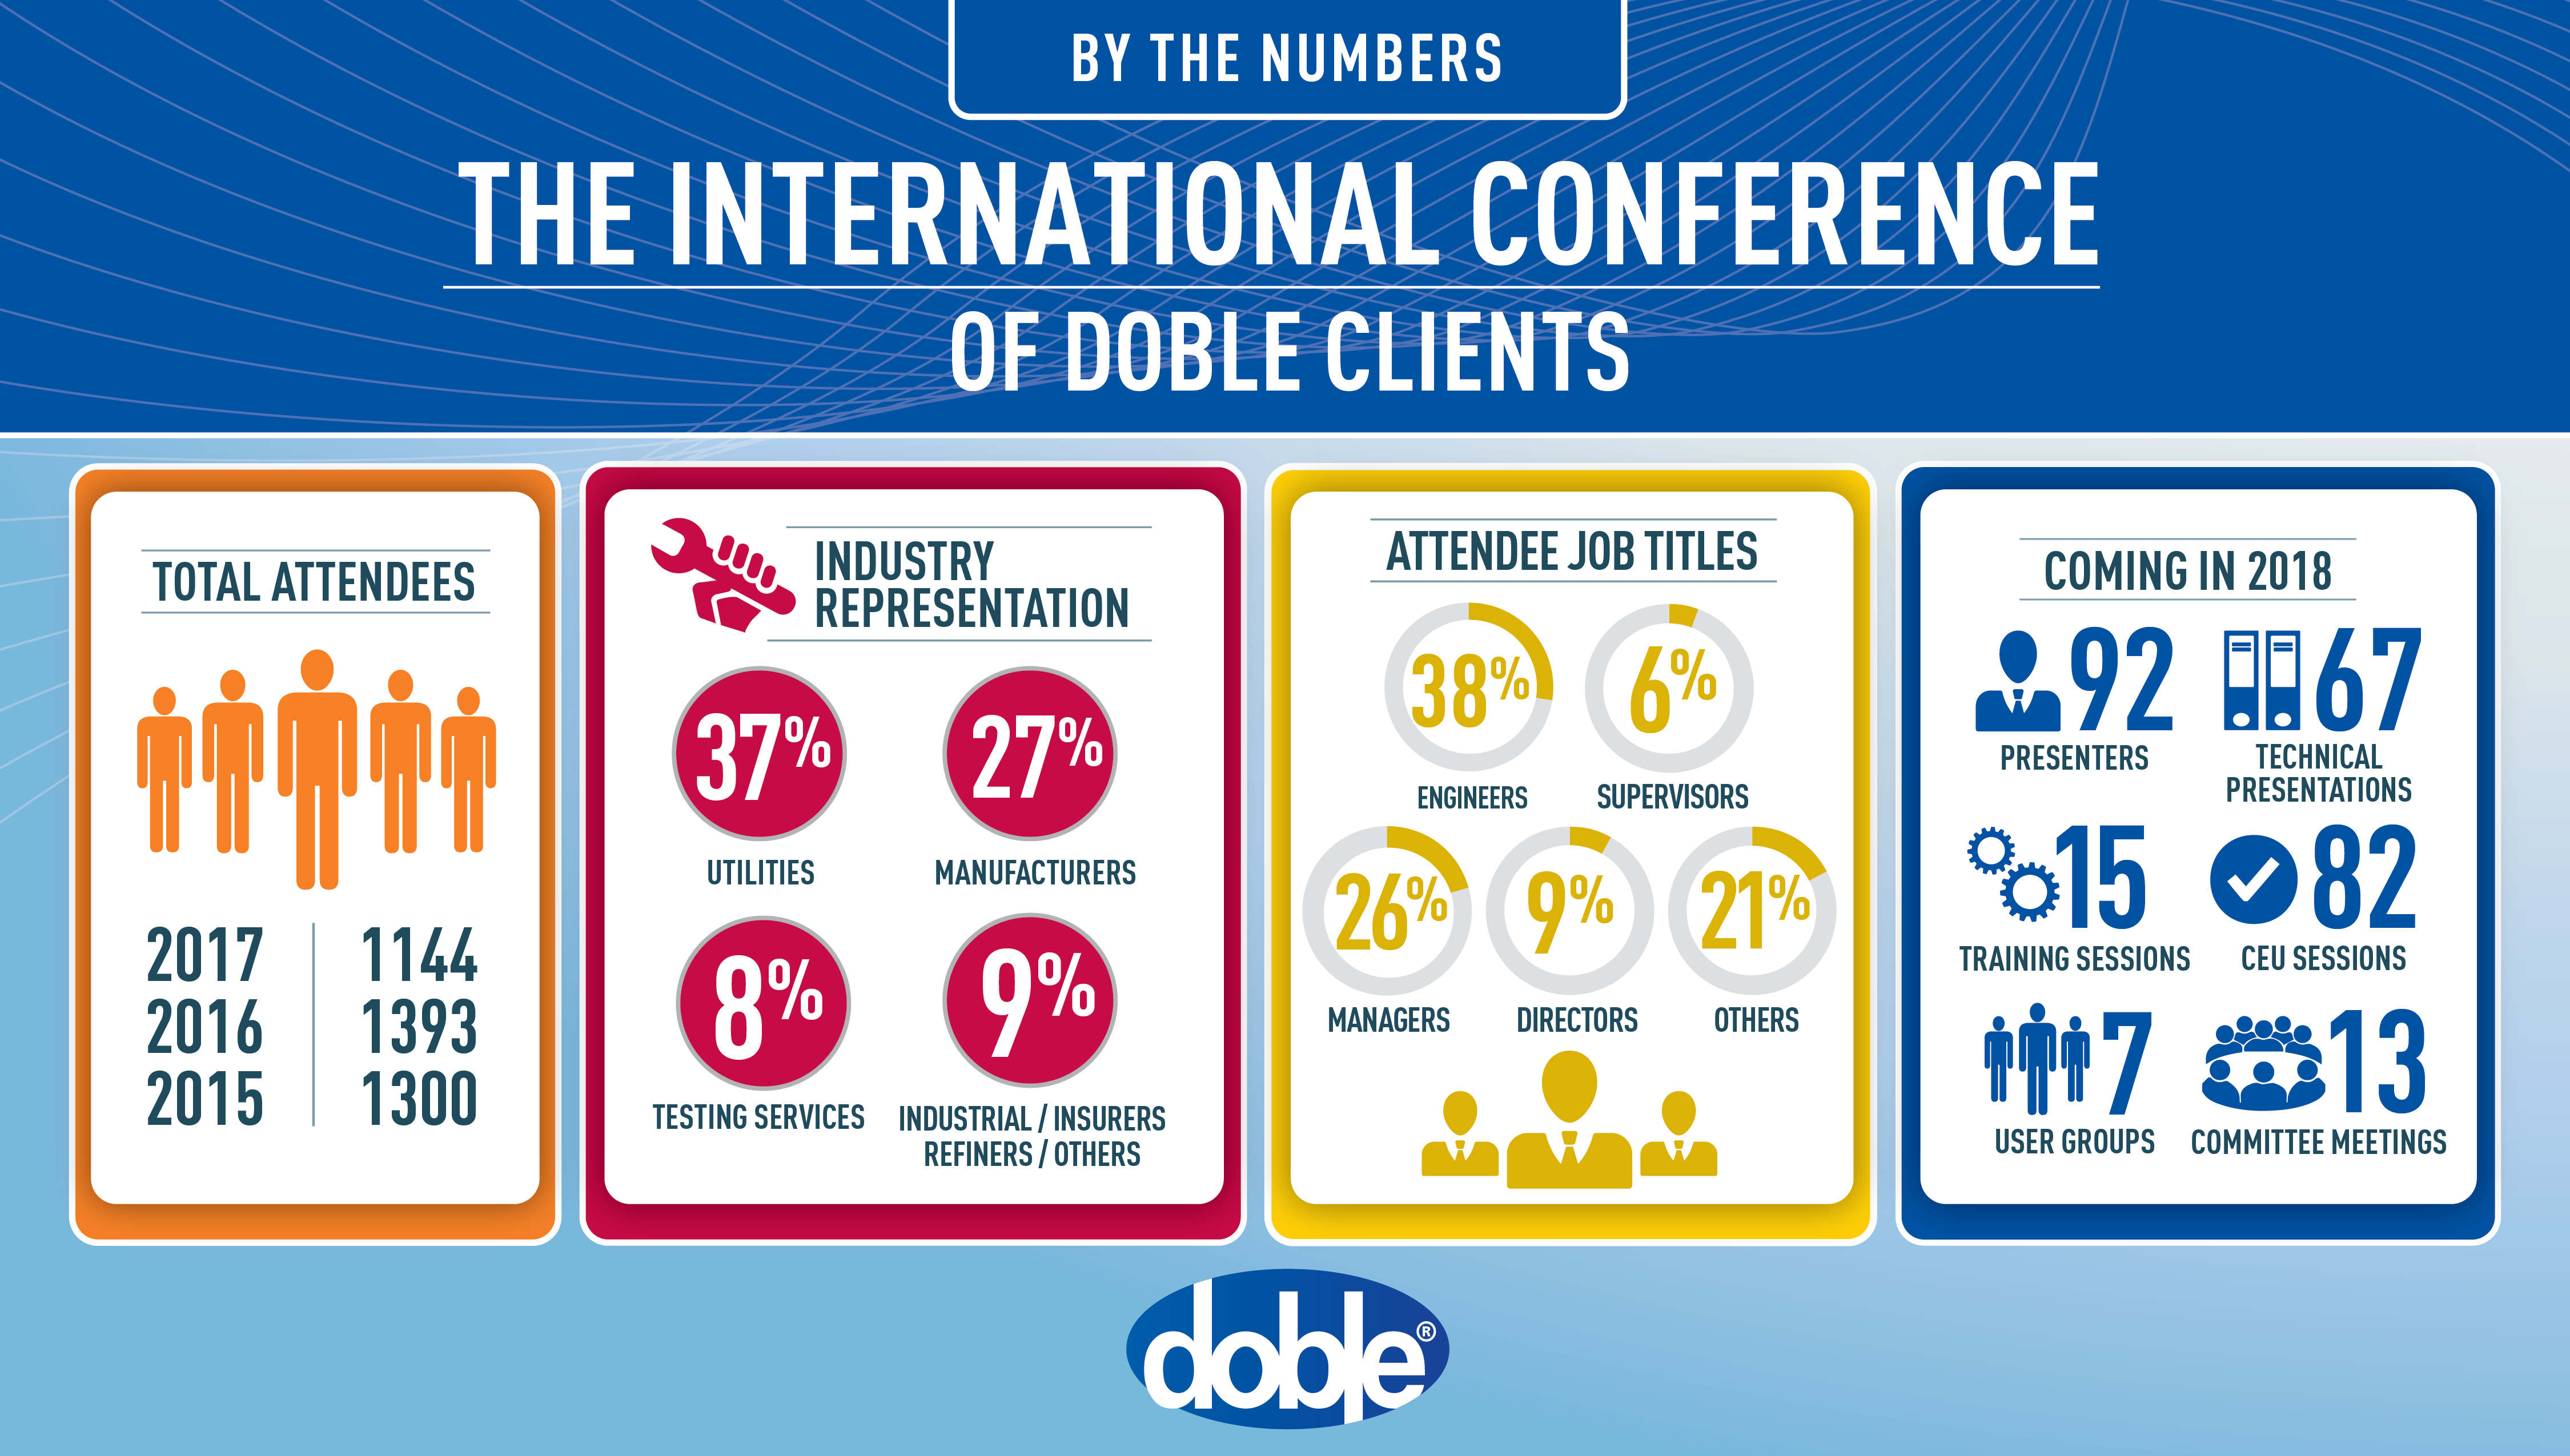 Doble_IntlBoston_Infographic_012518-01